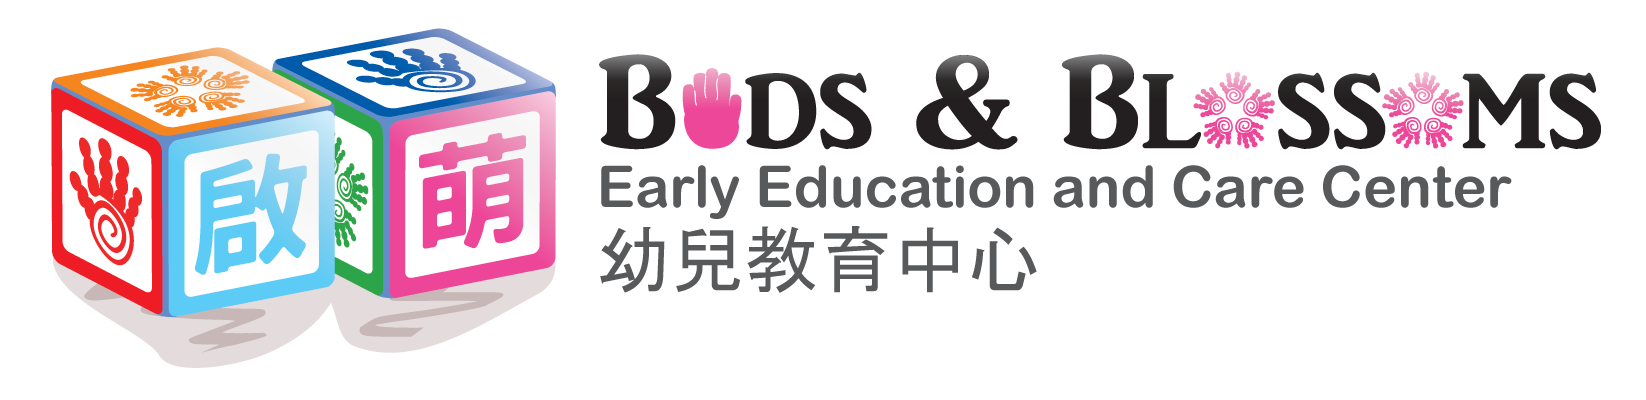 Buds & Blossoms Colored Blocks Logo.